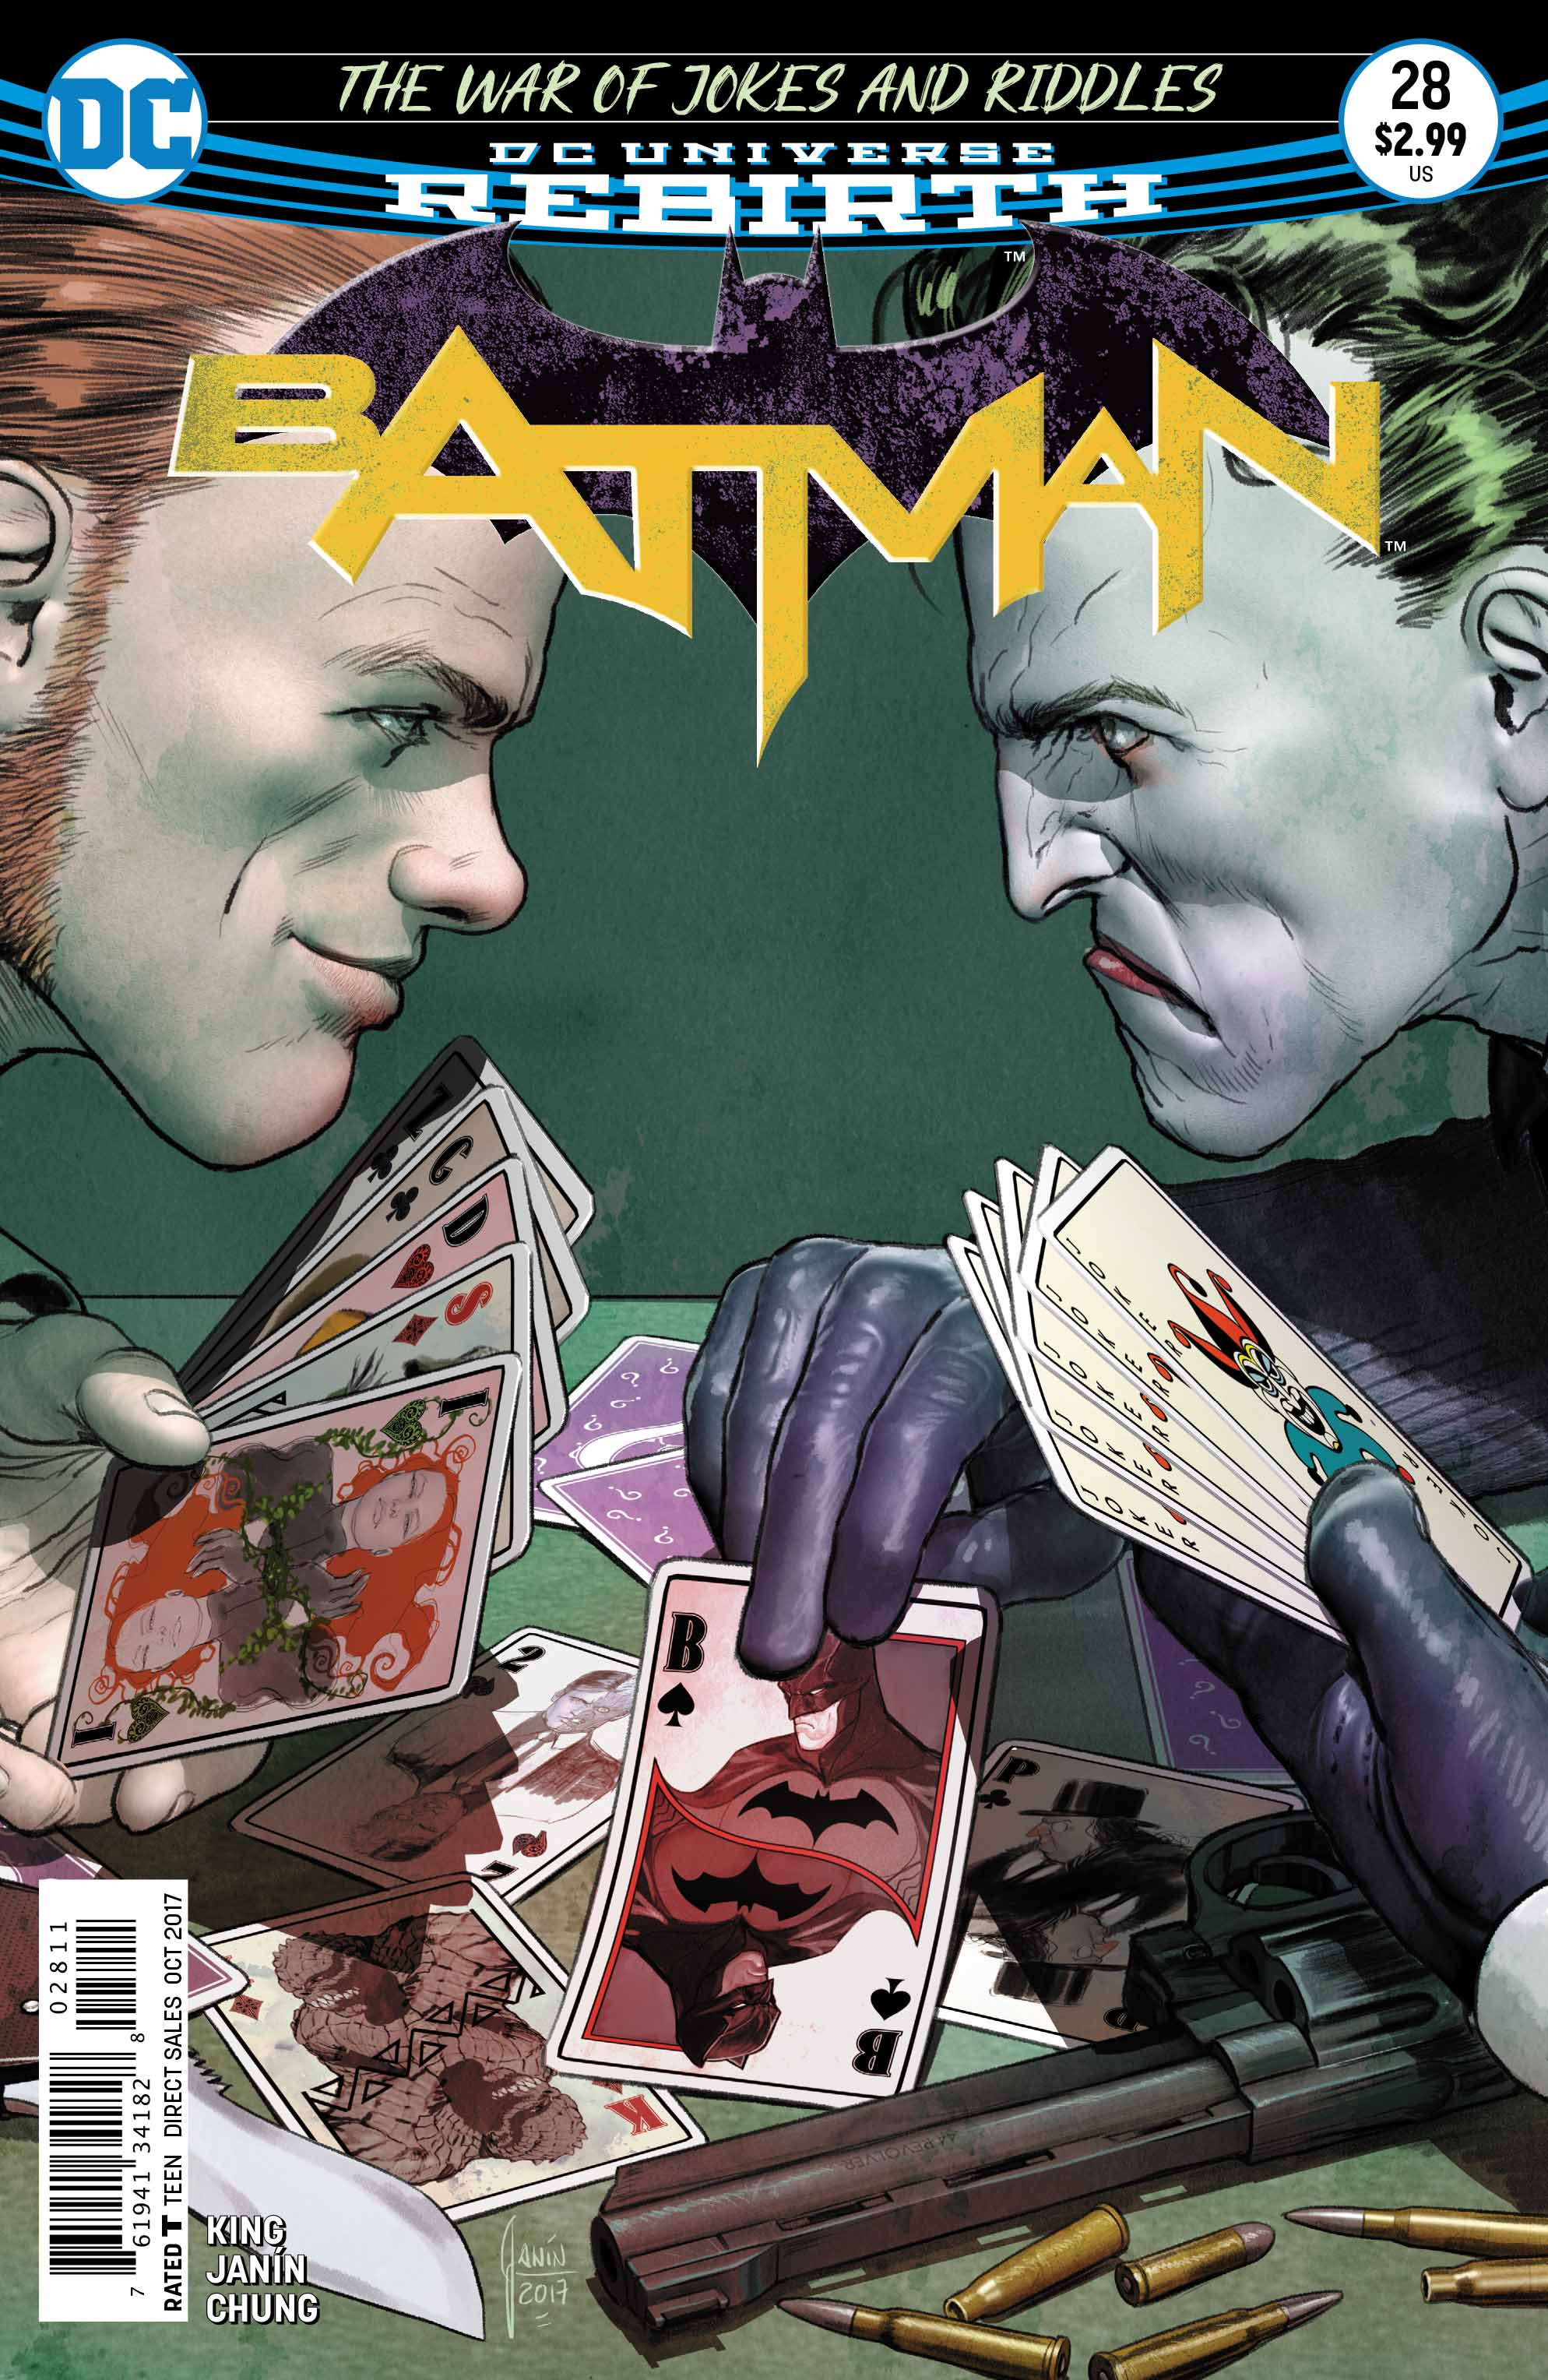 'Batman' #28, in stores now from DC Comics